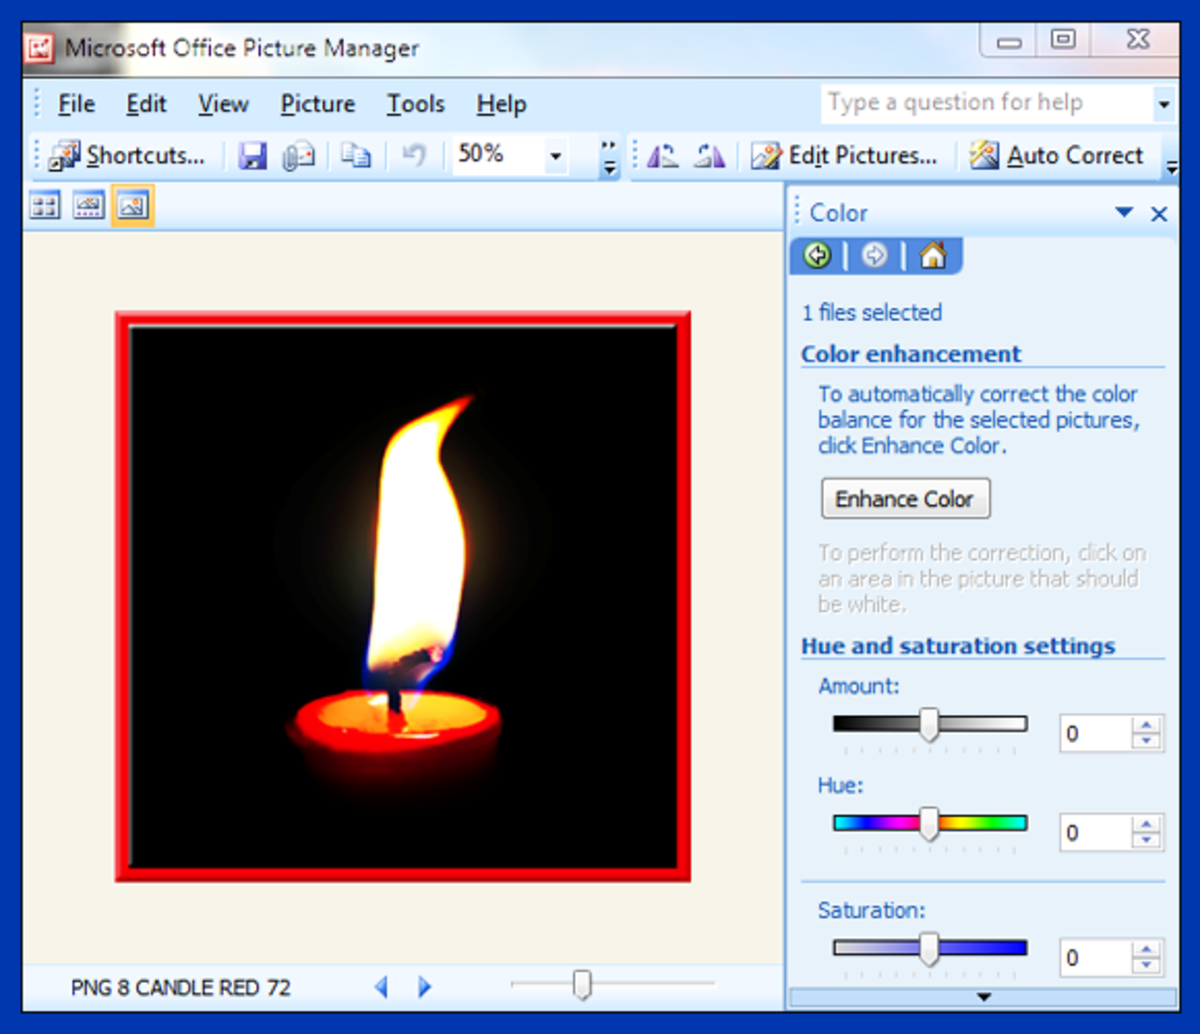 Screenshot 9. Saturating the color in your photo in Microsoft Office Picture Manager